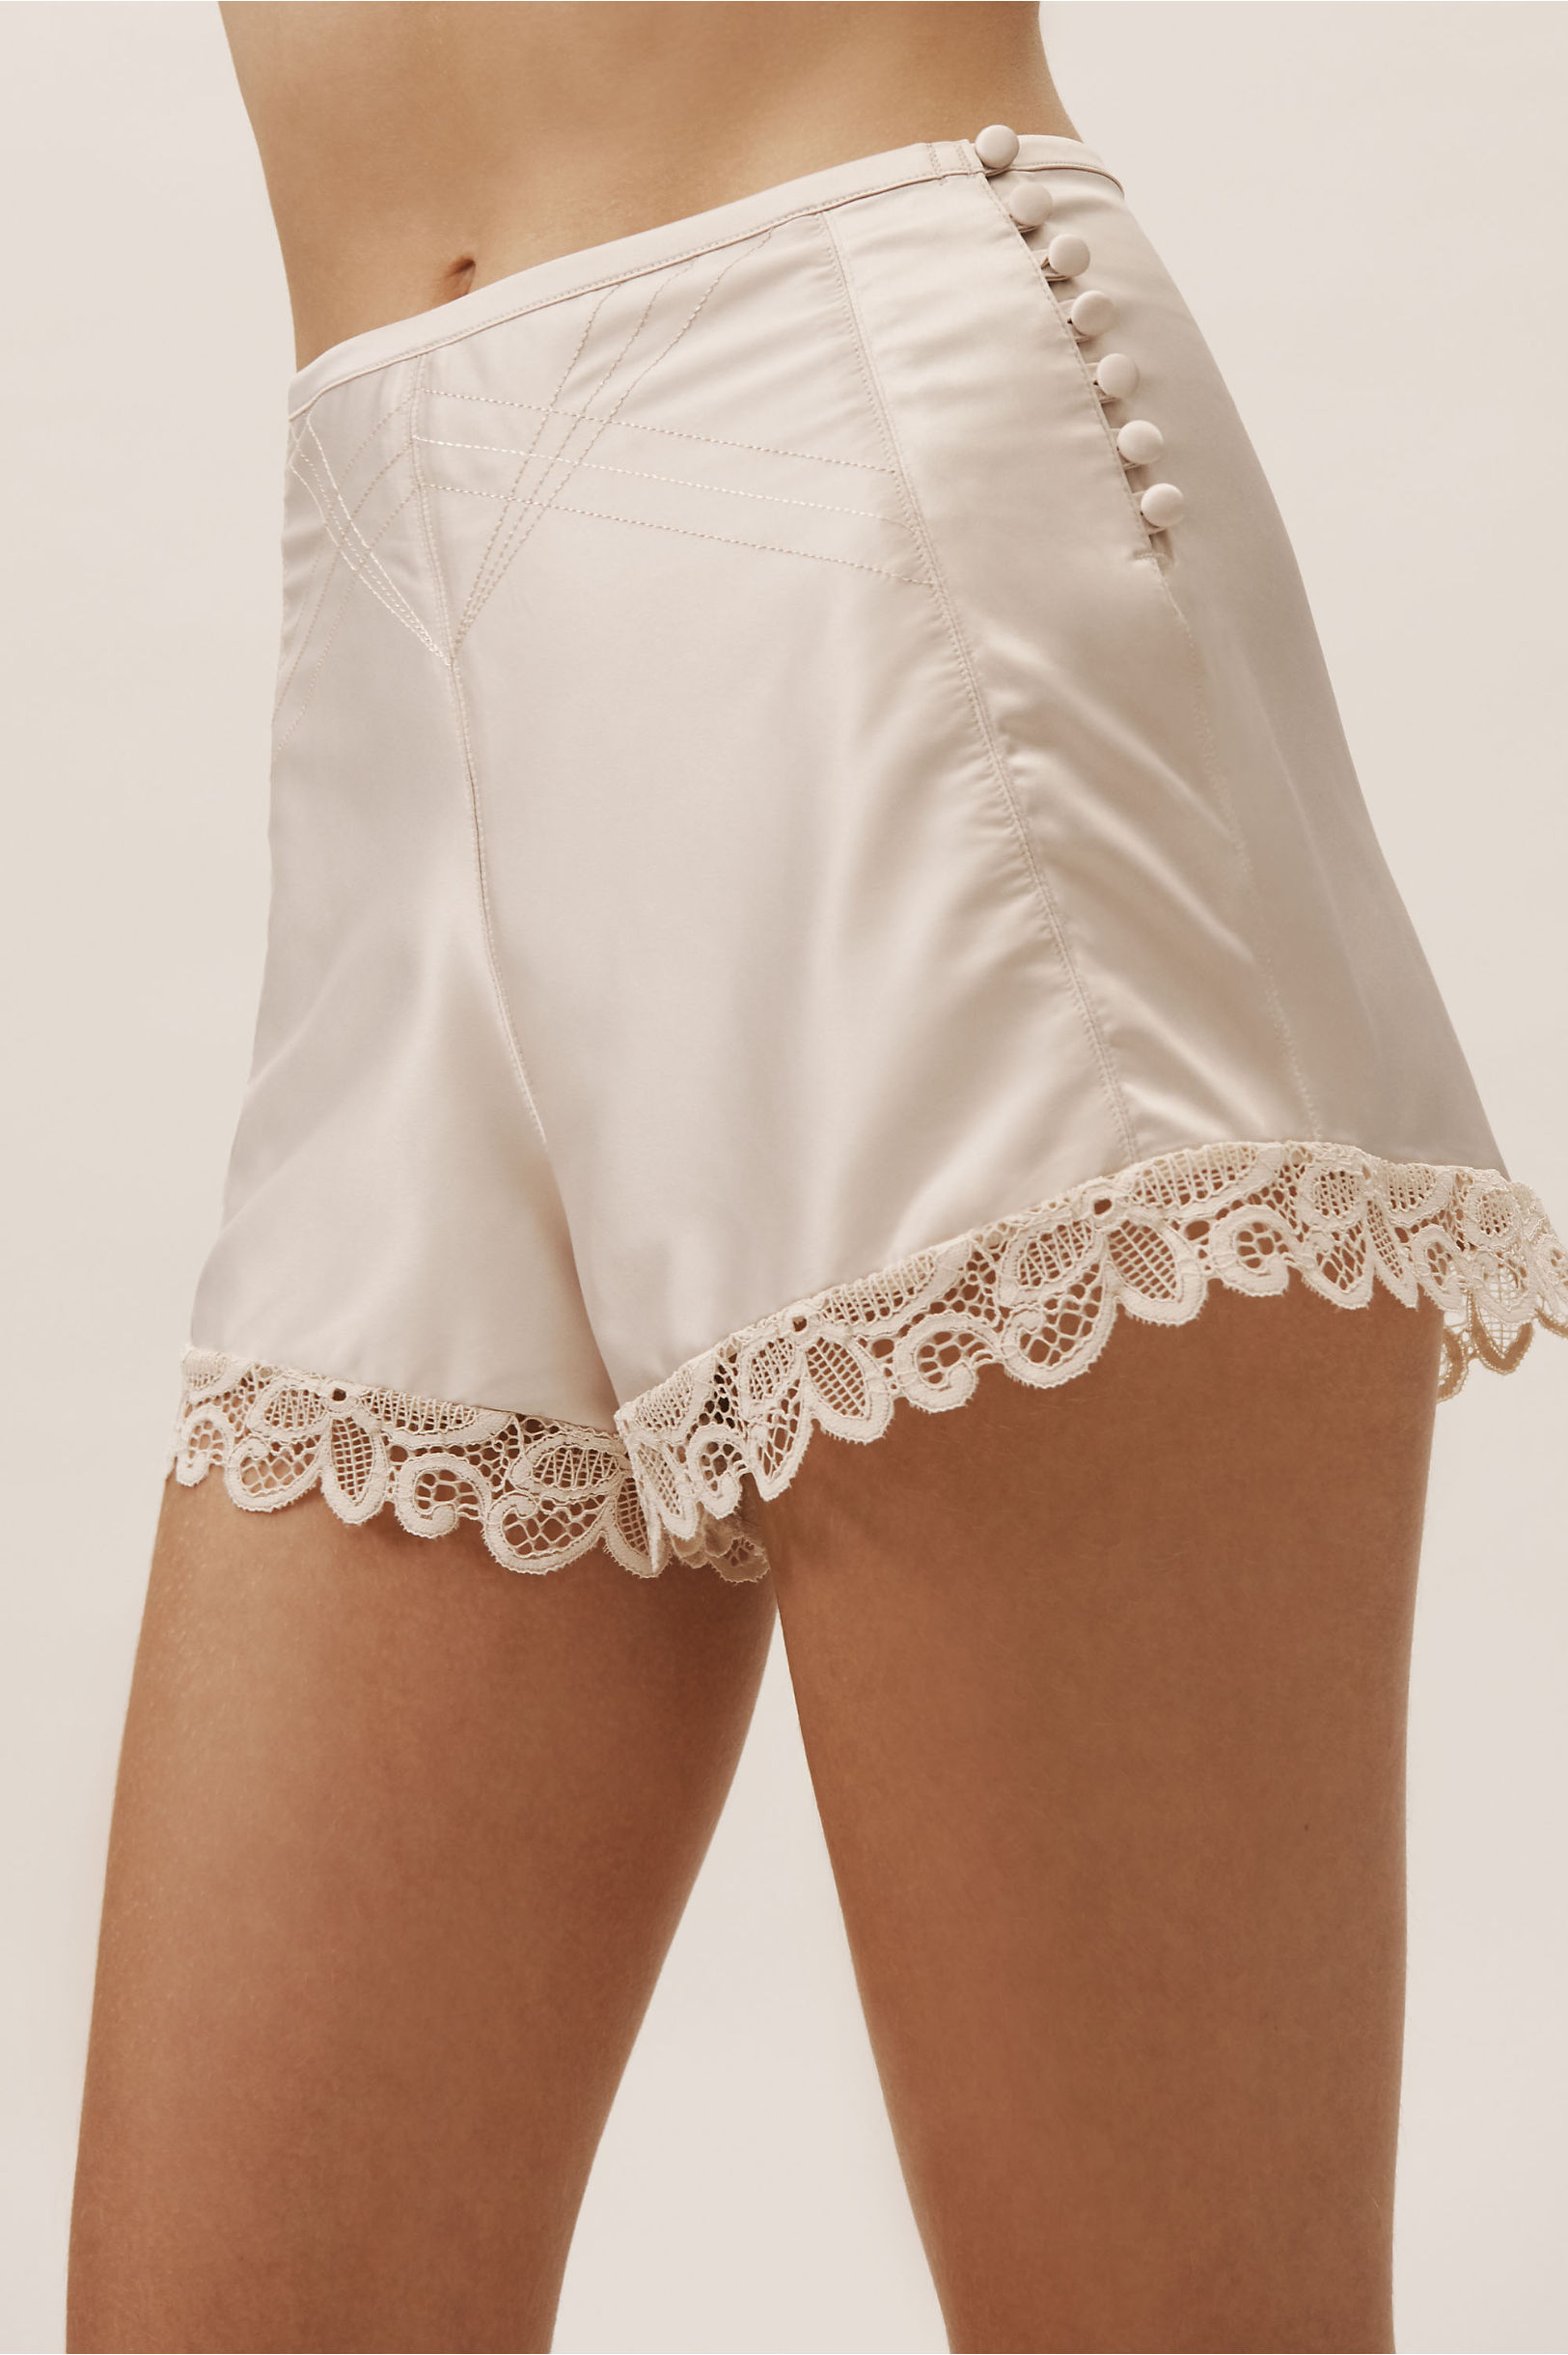 1950s Lingerie History – Bras, Girdles, Slips, Panties, Garters Sugar Shorts $80.00 AT vintagedancer.com